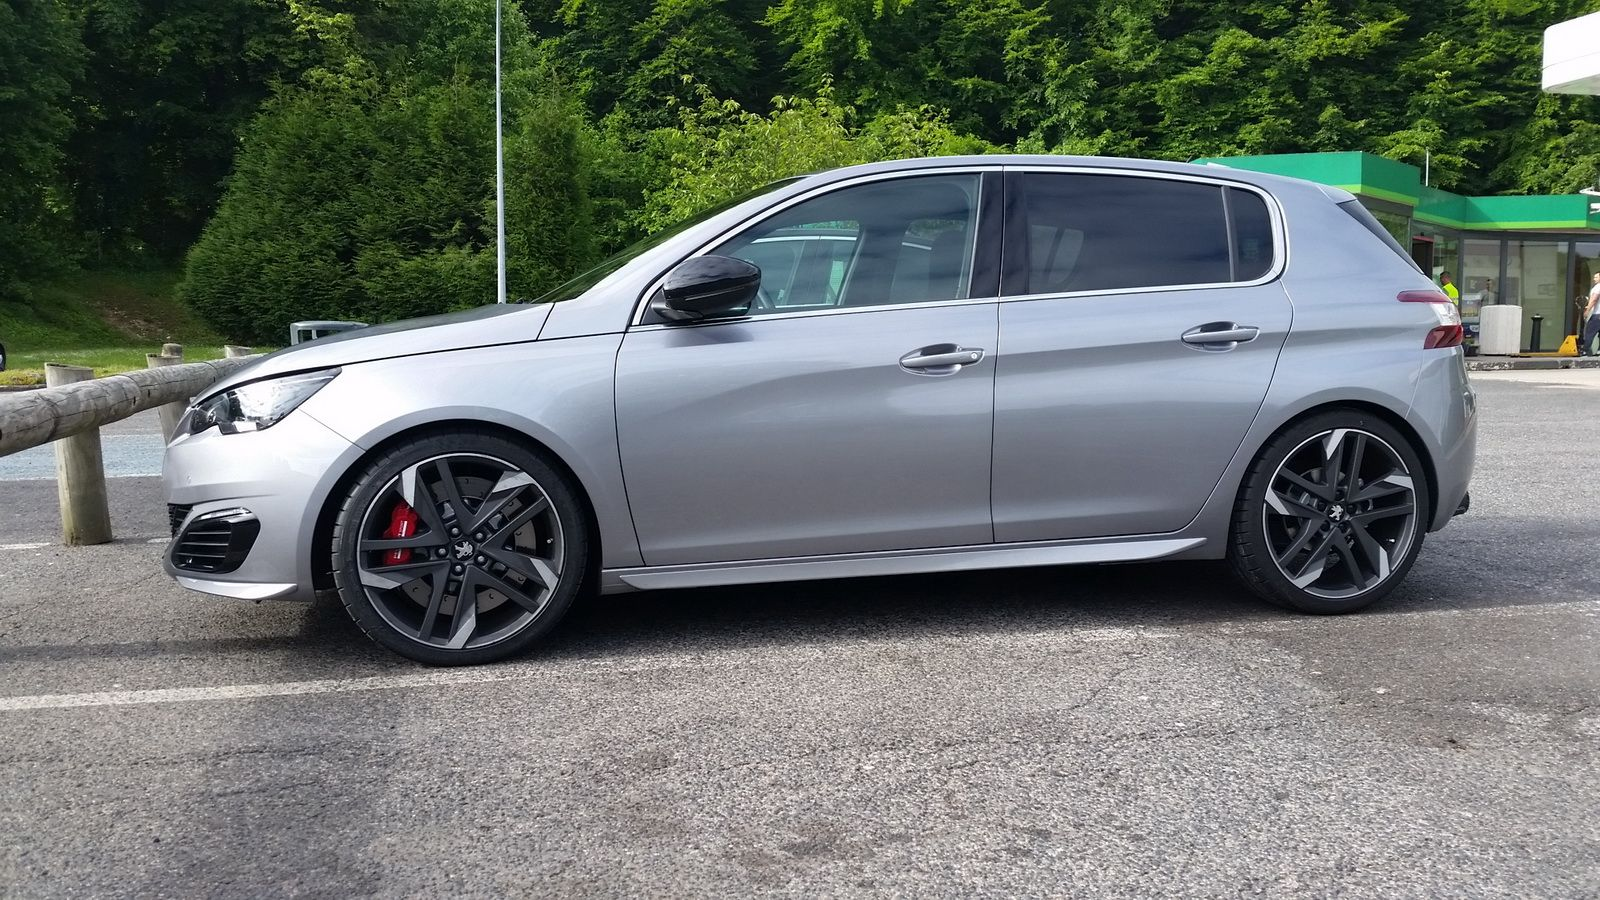 New Peugeot 308 Gti Surfaces On The Net Ahead Of Its Debut Carscoops Peugeot 308 Peugeot Gti